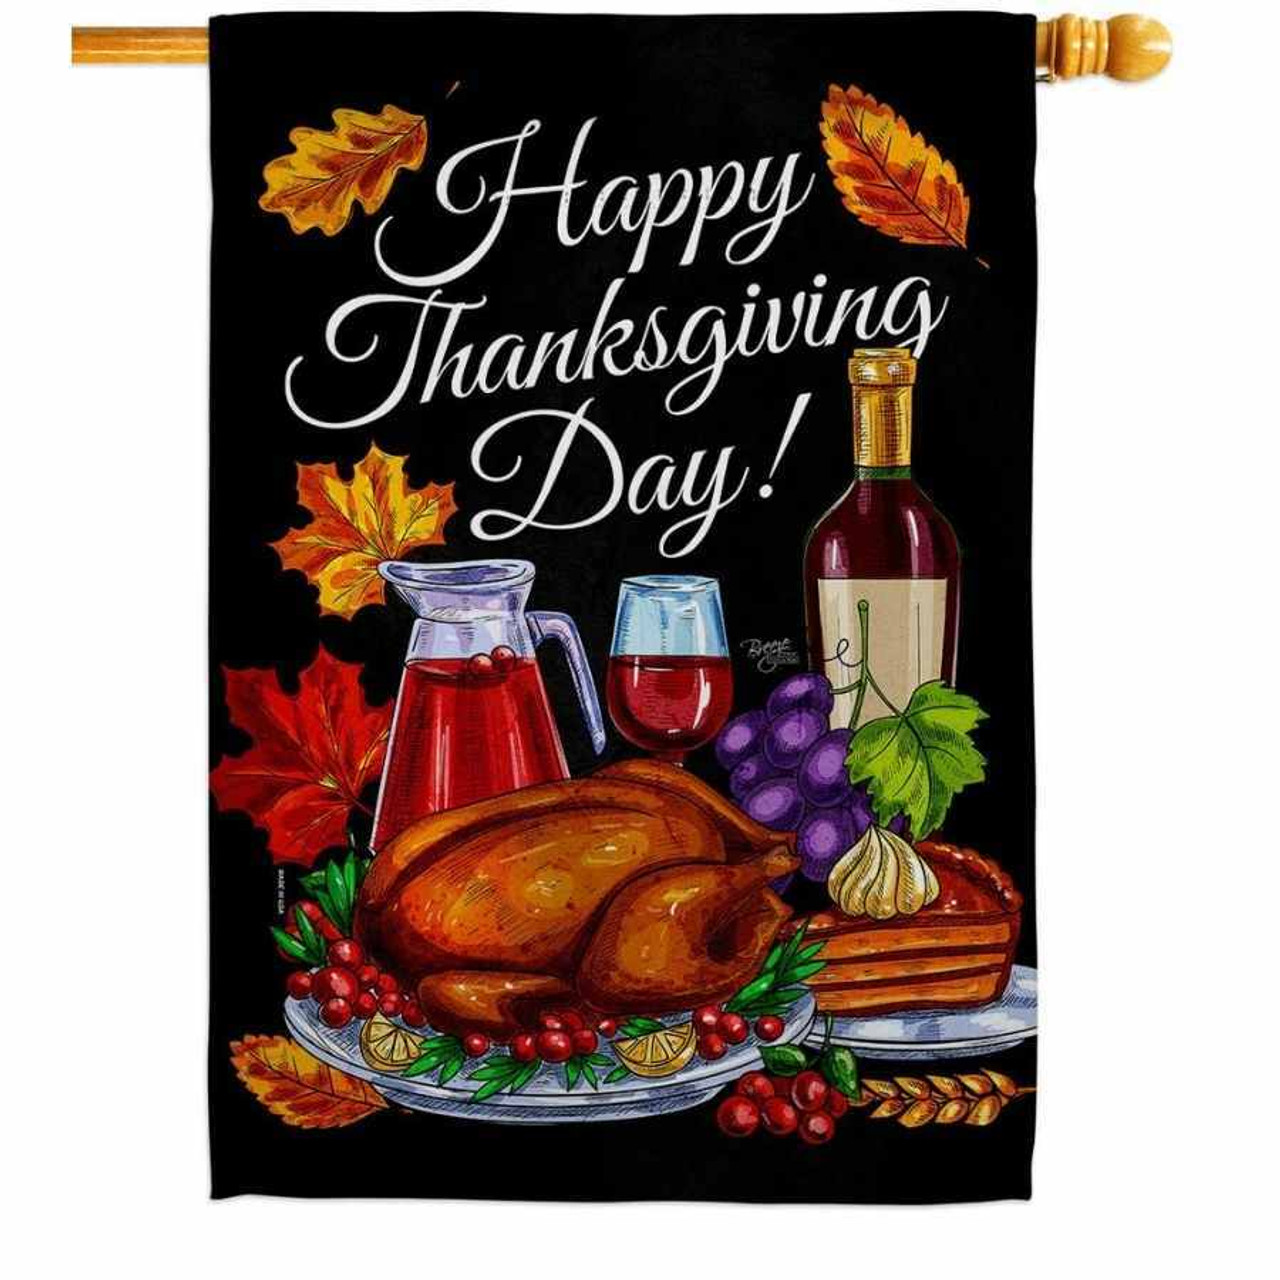 """A black flag that says """"Happy Thanksgiving Day!"""" across the top in white. The bottom portion of the flag has Thanksgiving food. Orange leaves are scattered around the flag."""